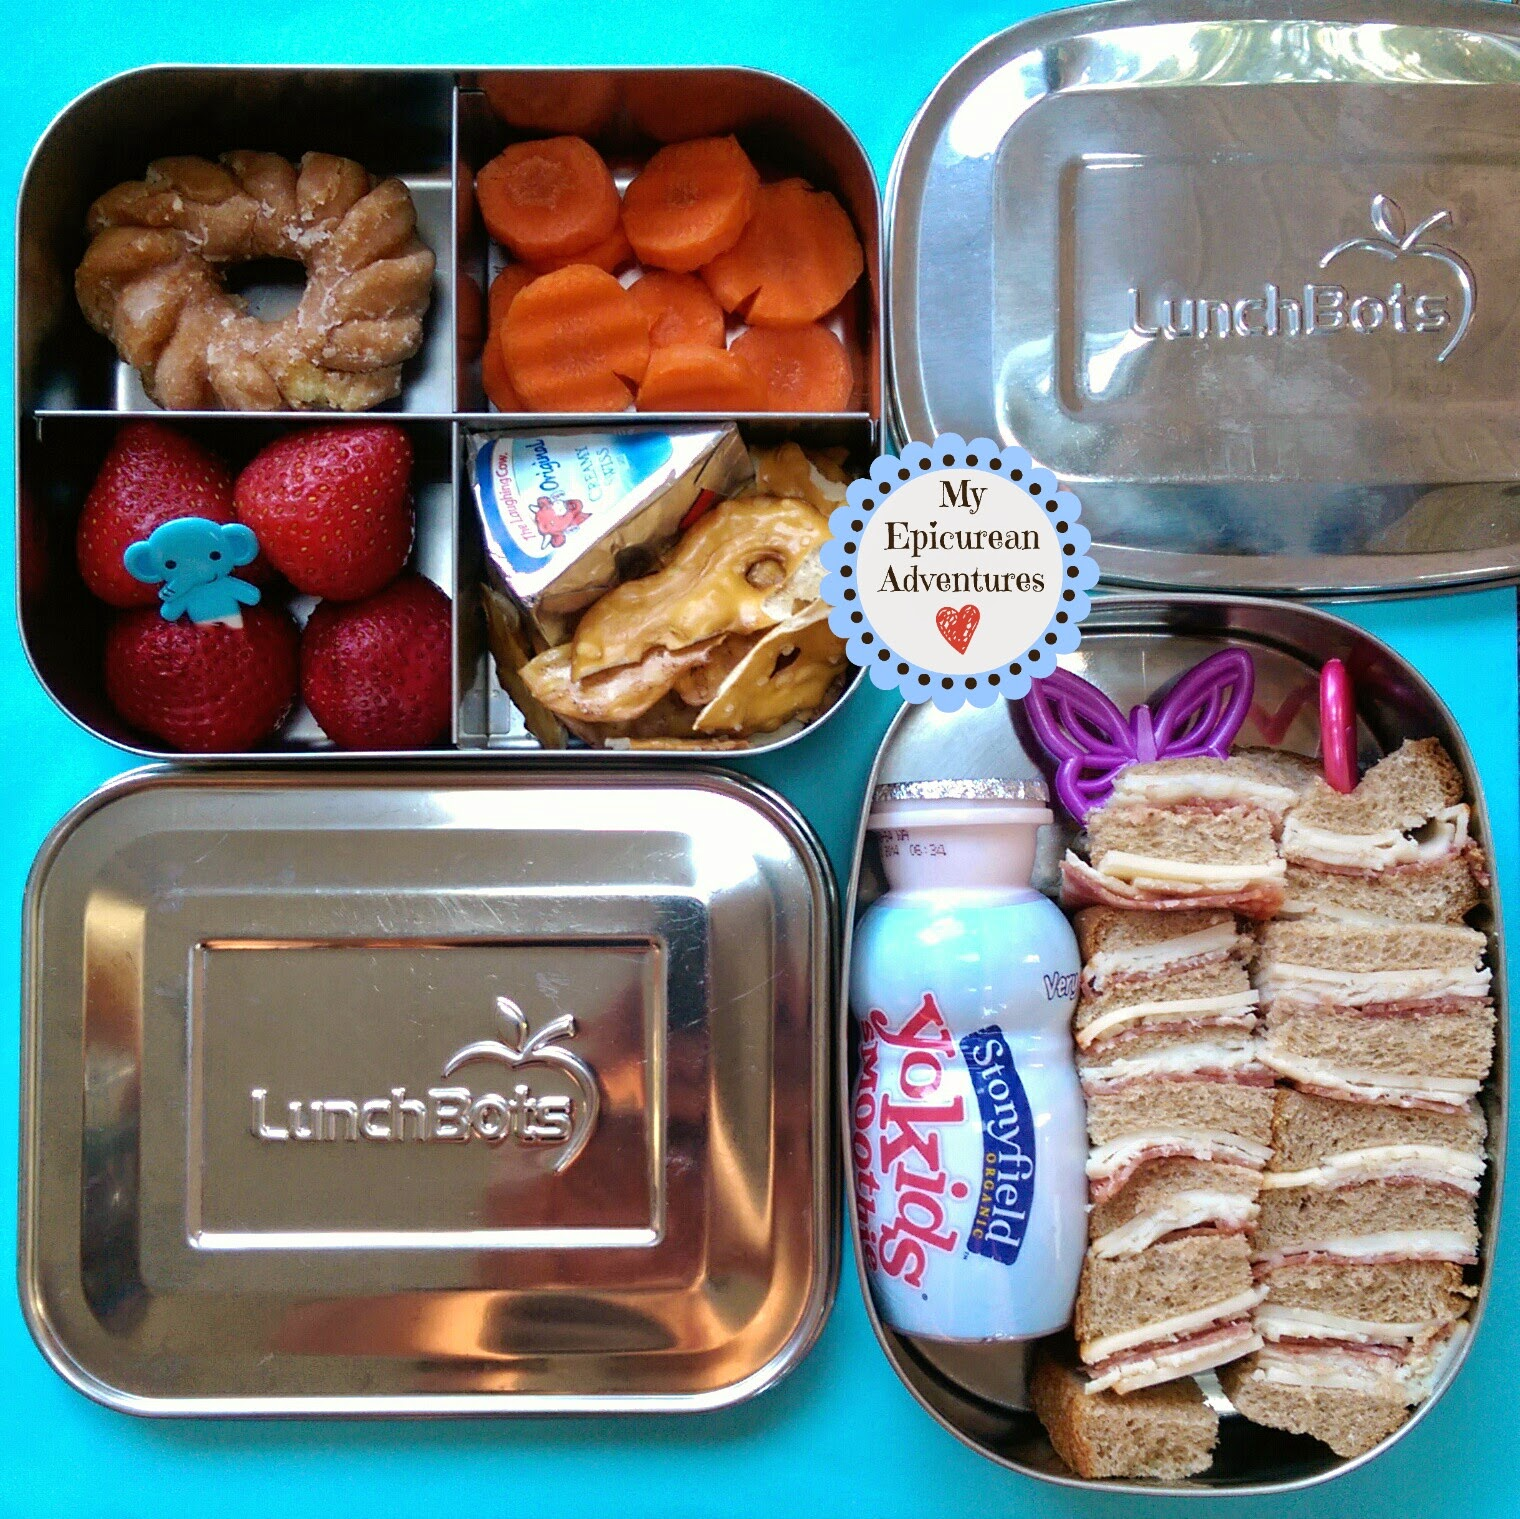 My Epicurean Adventures: Here's Lunch #36: Sandwiches on Sticks and a PB&J in @lunchbots